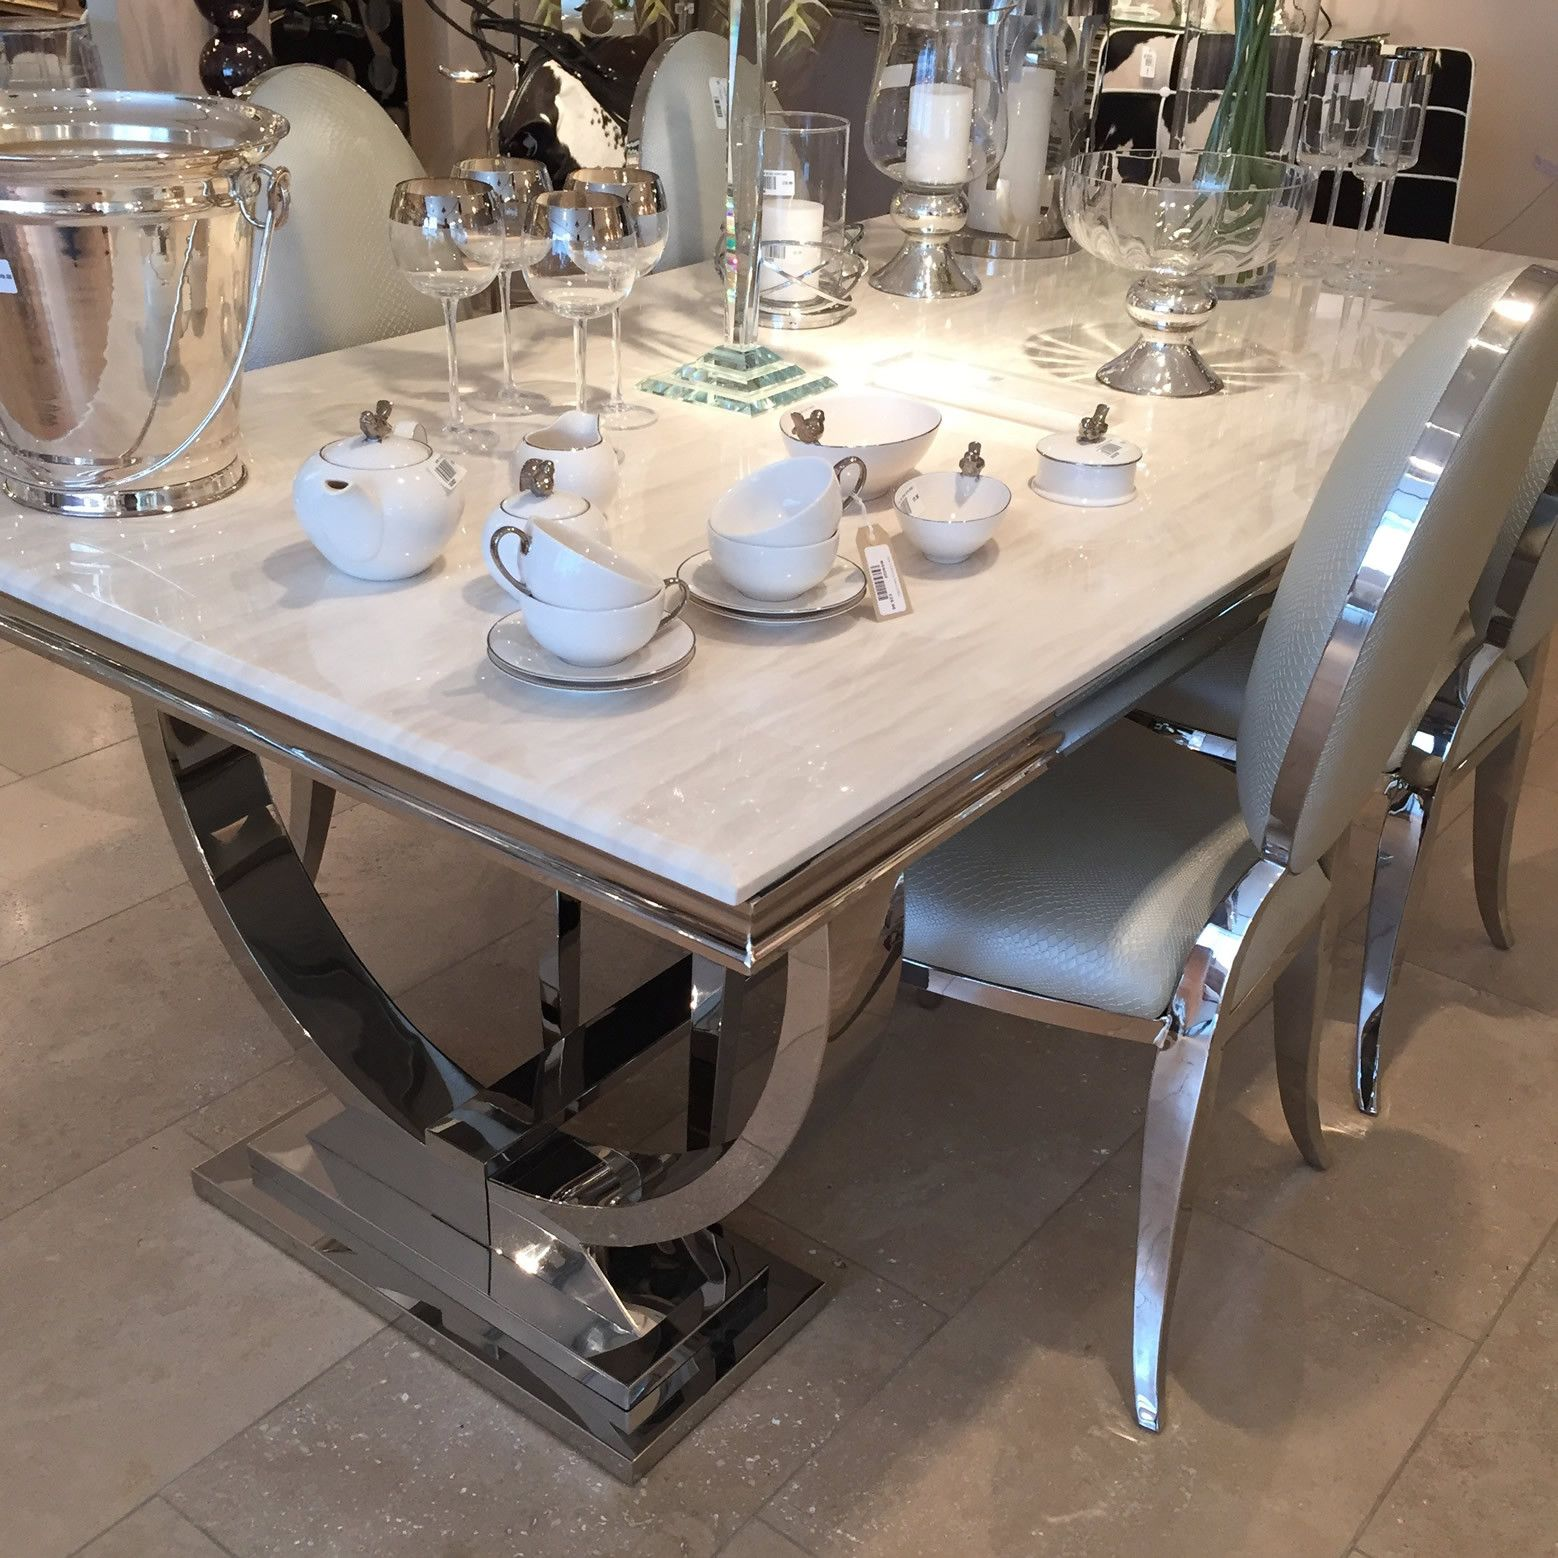 Cream Marble And Chrome Dining Table With U Shaped Legs Dining